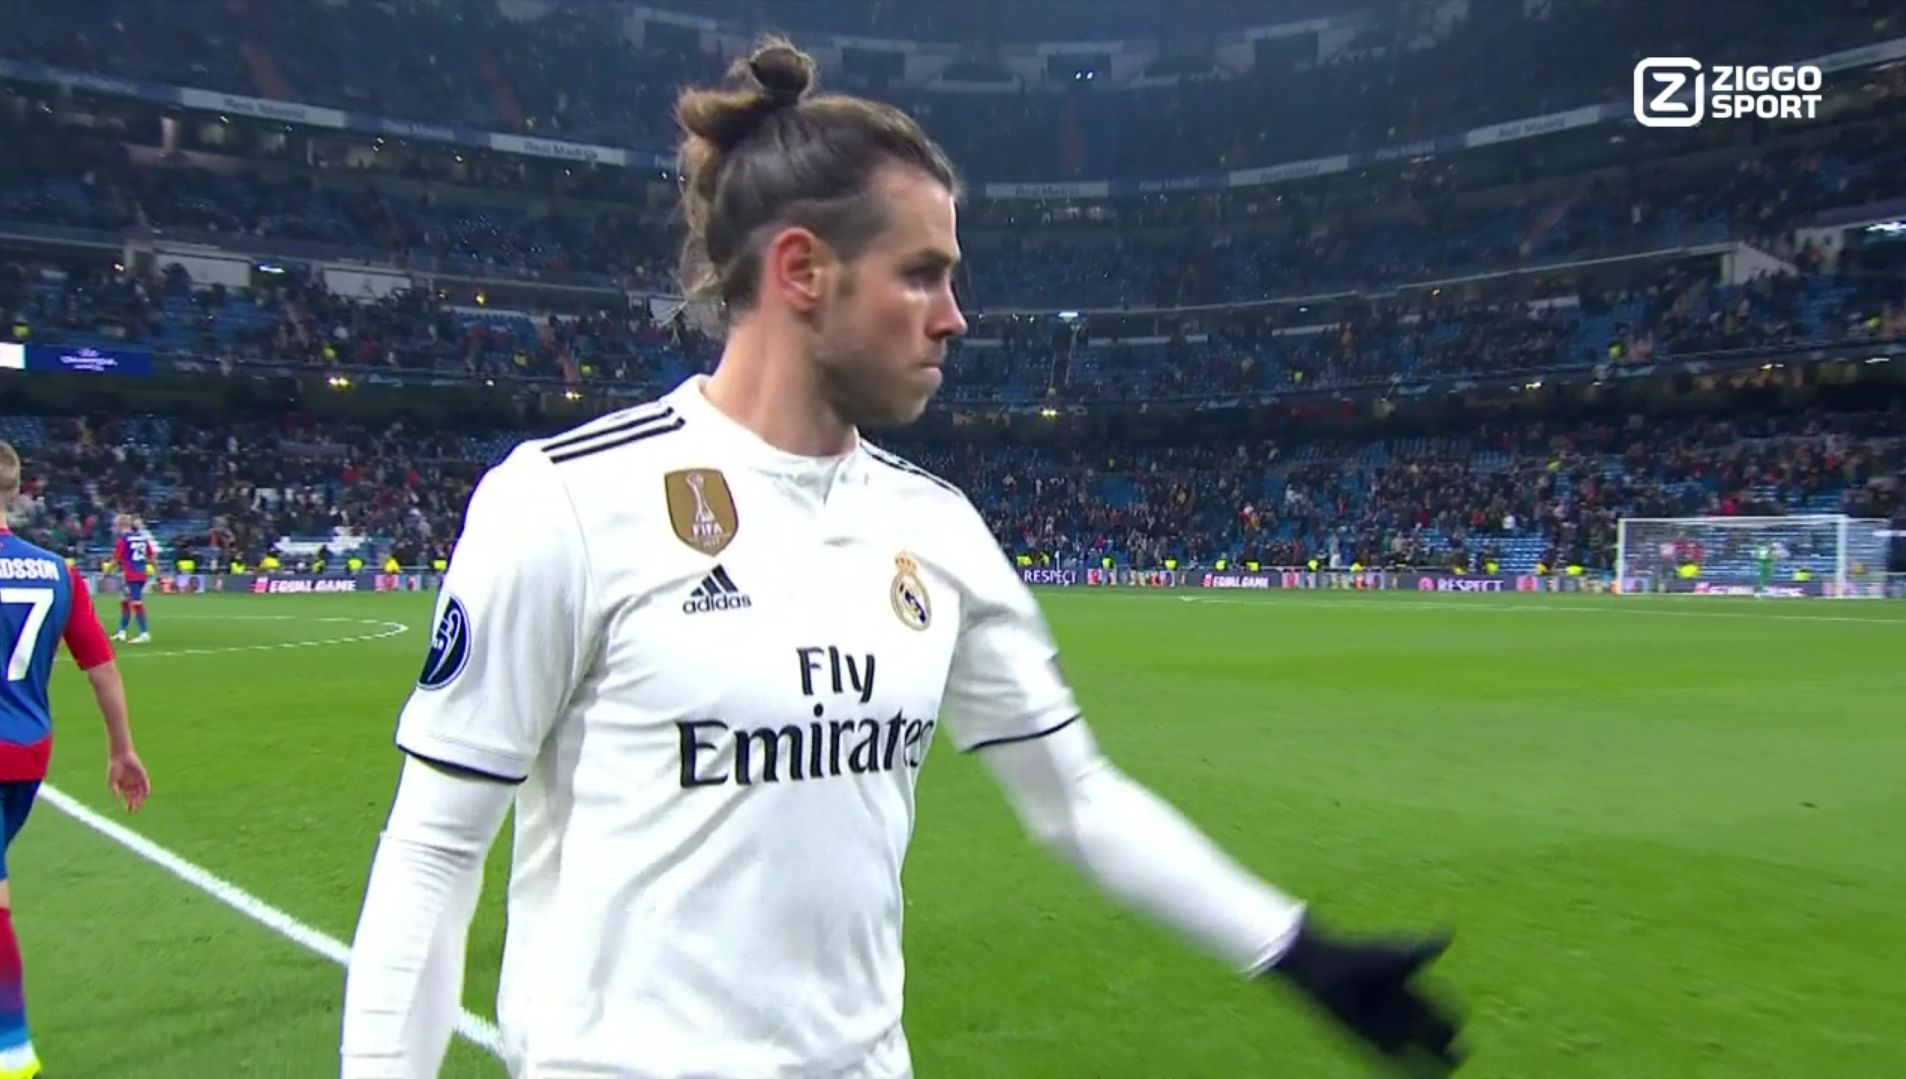 Gareth Bale leaving the field of play